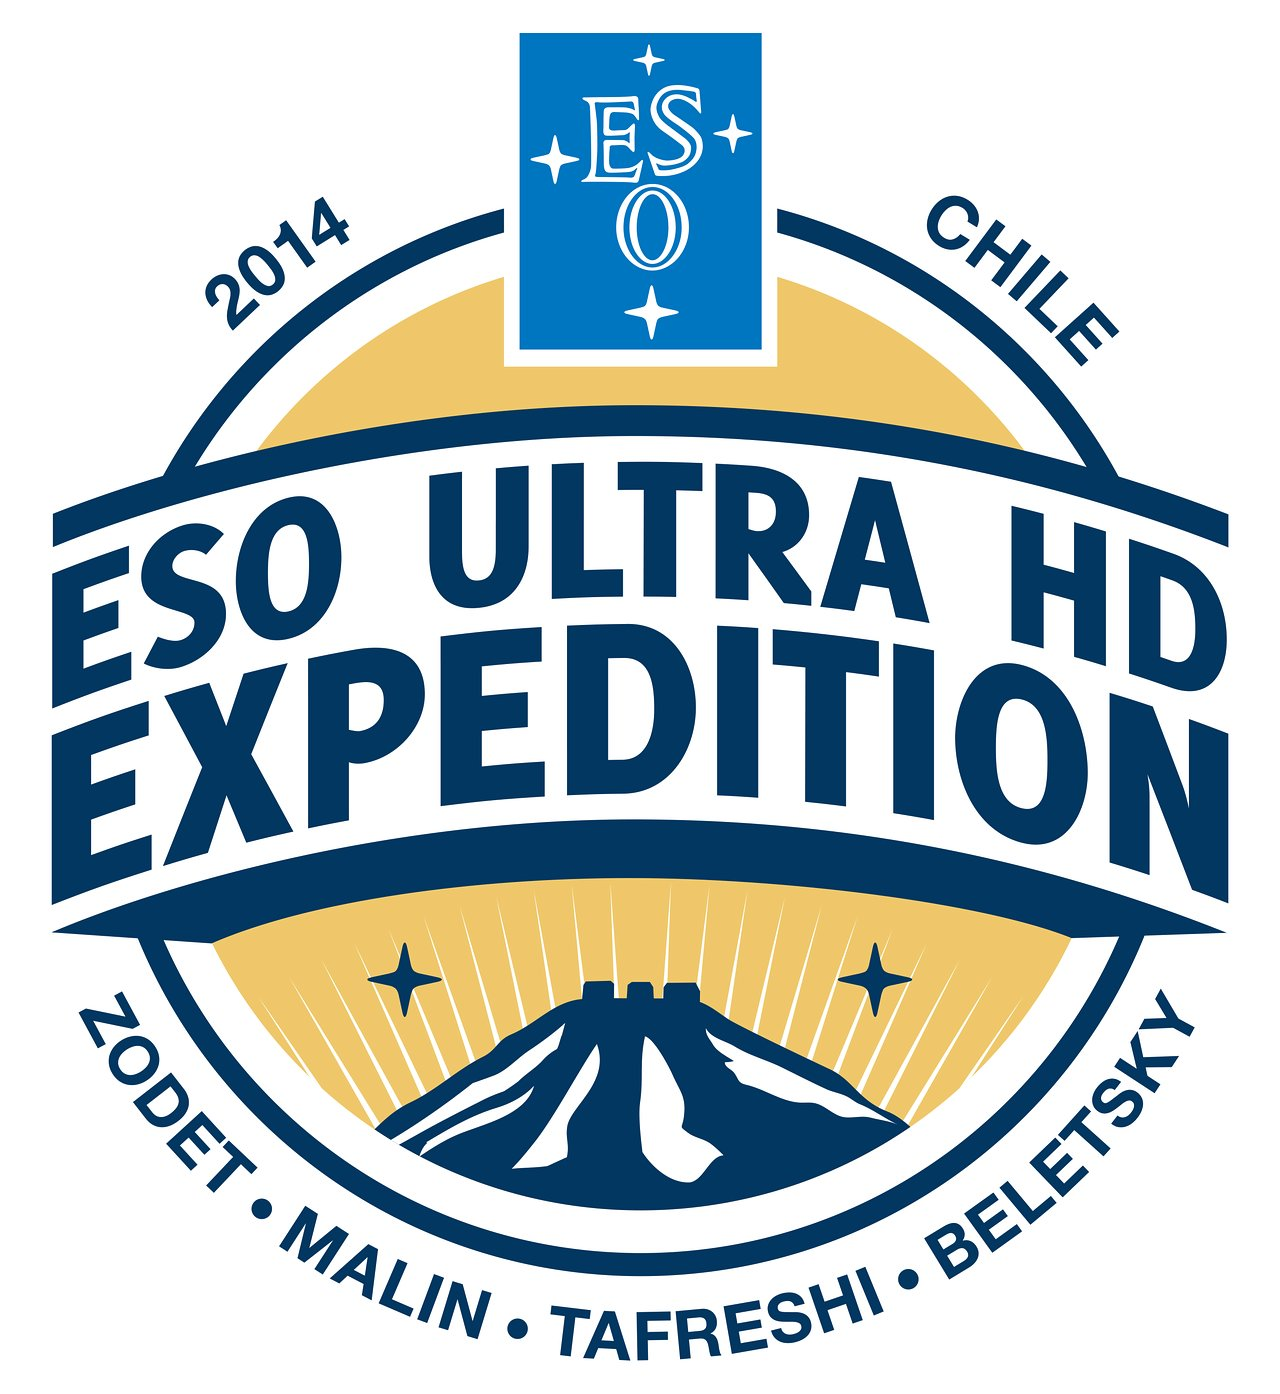 ESO Ultra HD Expedition Logo